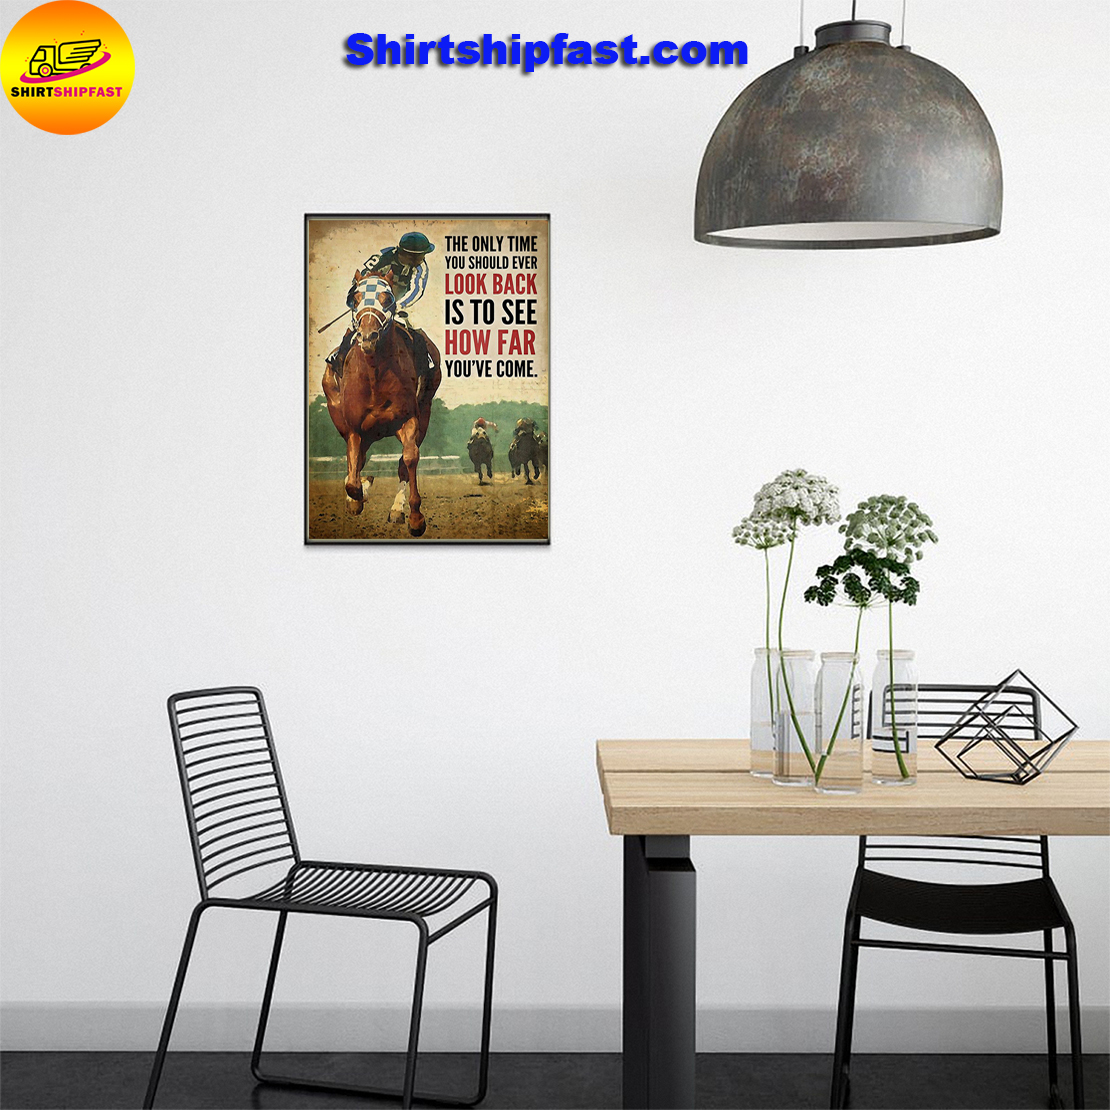 Horse racing secretariat The only time you should ever look back is to see how far you've come poster - Picture 2